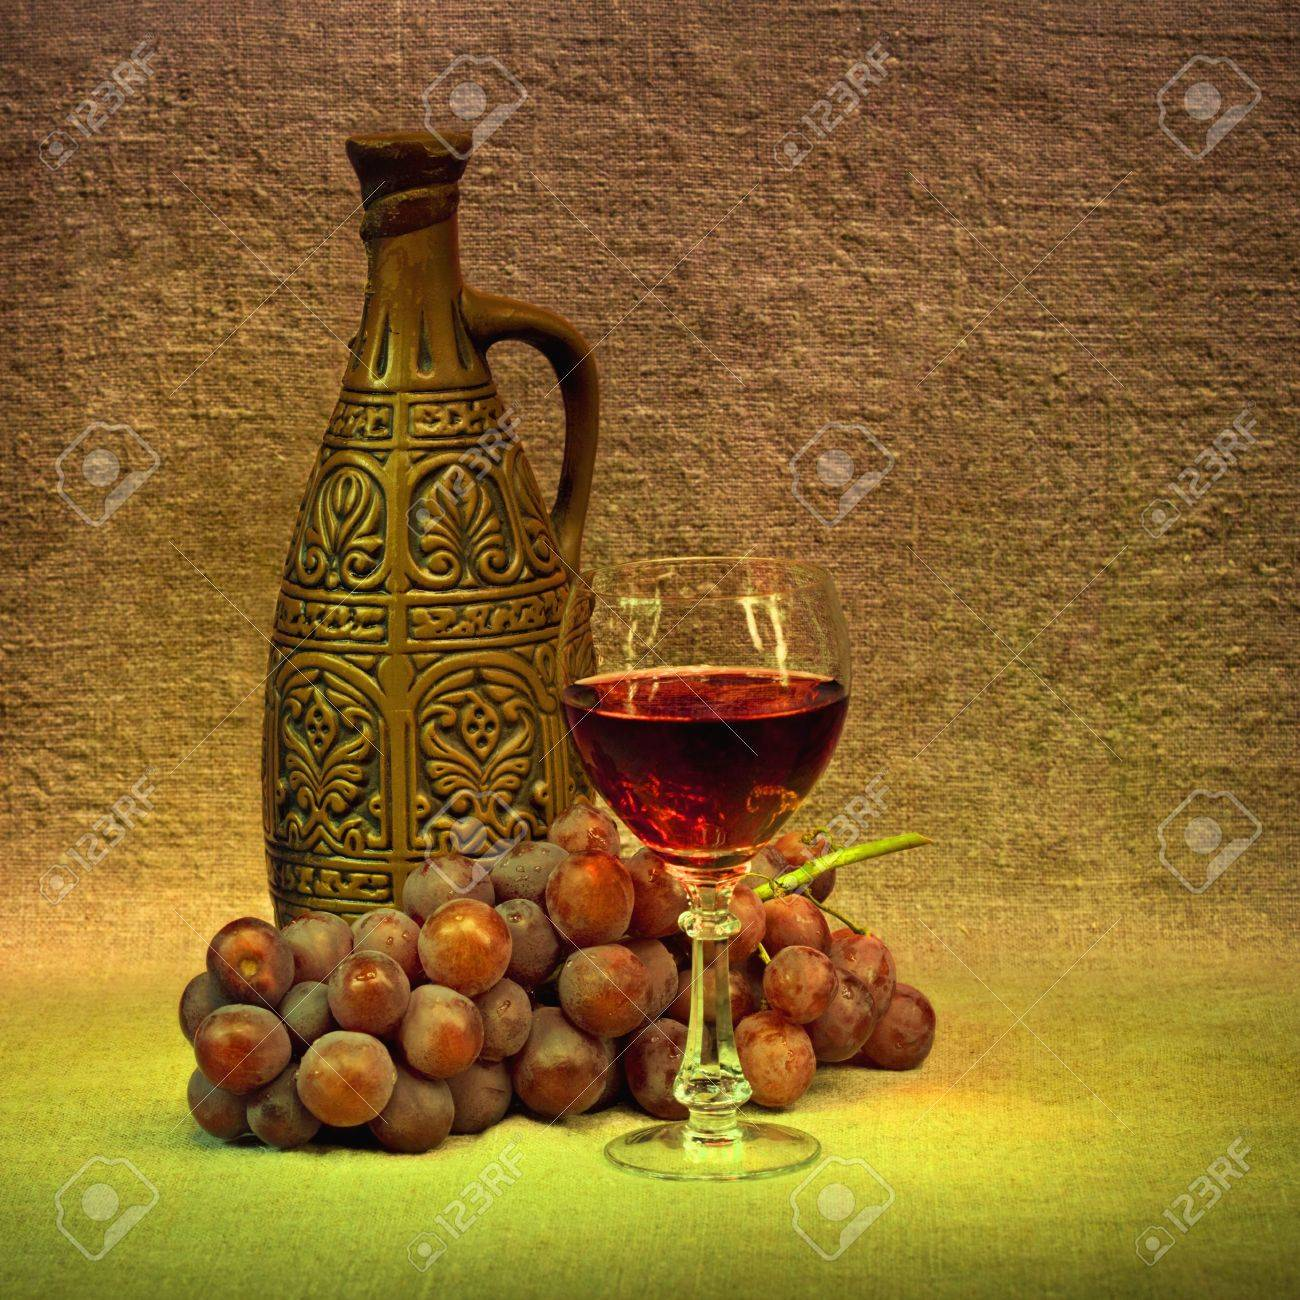 Clay bottle, glass and grapes Stock Photo - 6781407